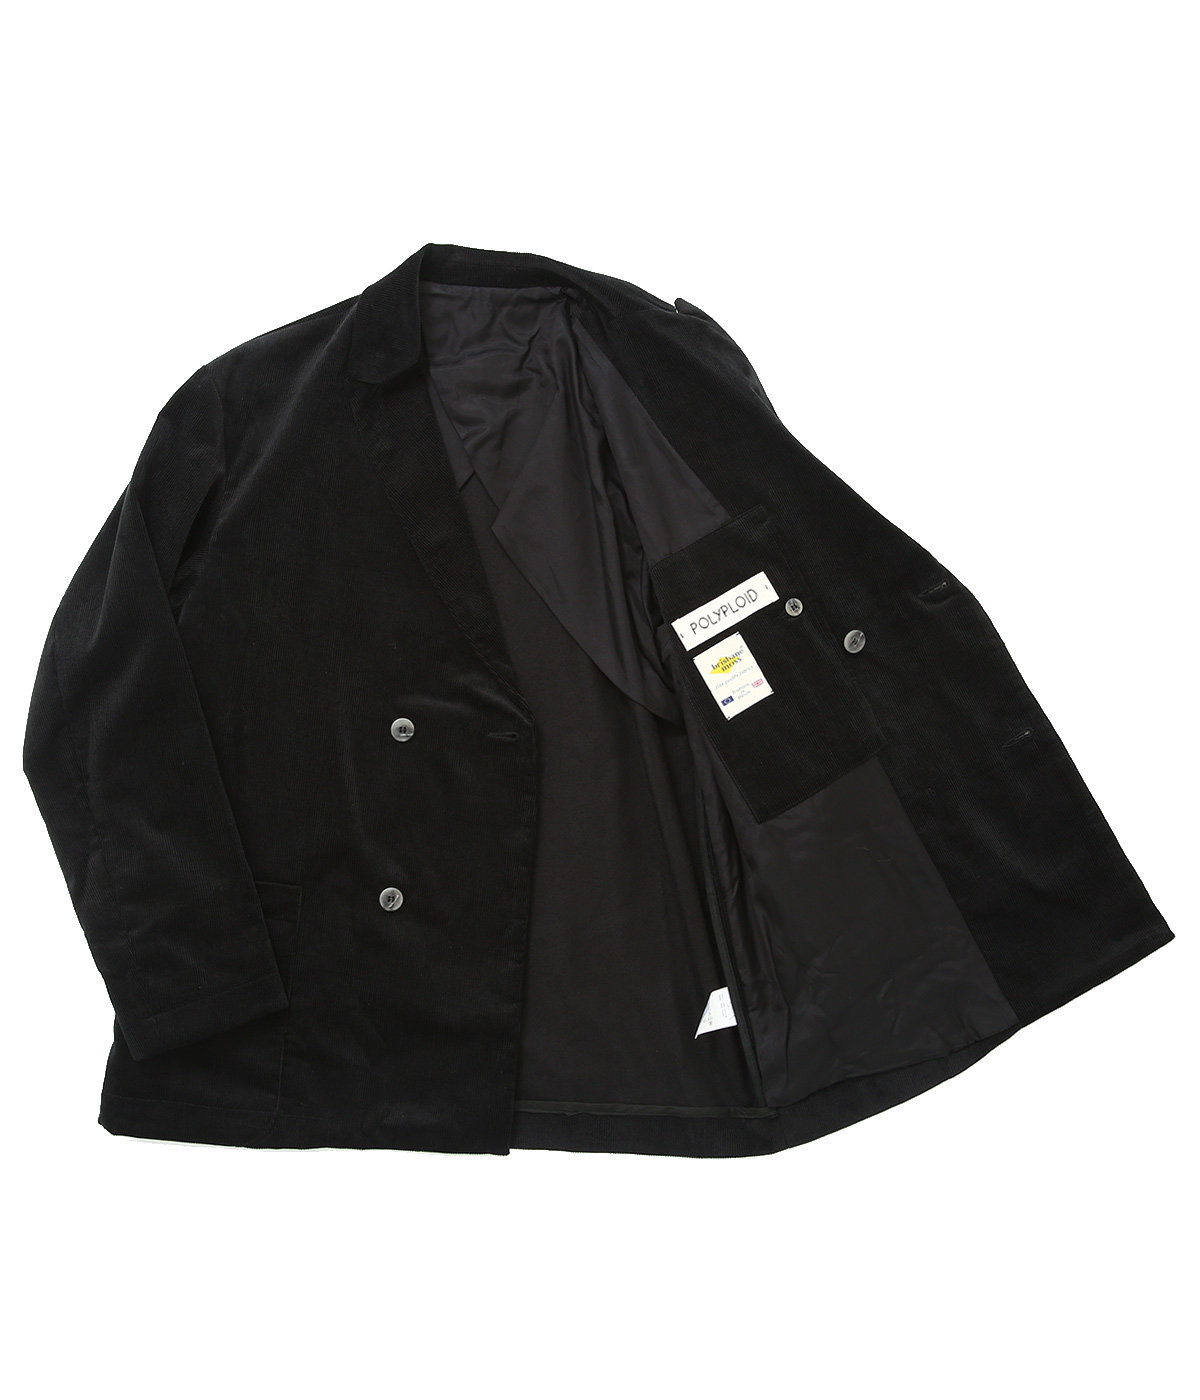 DOUBLE BREASTED SUIT JACKET C